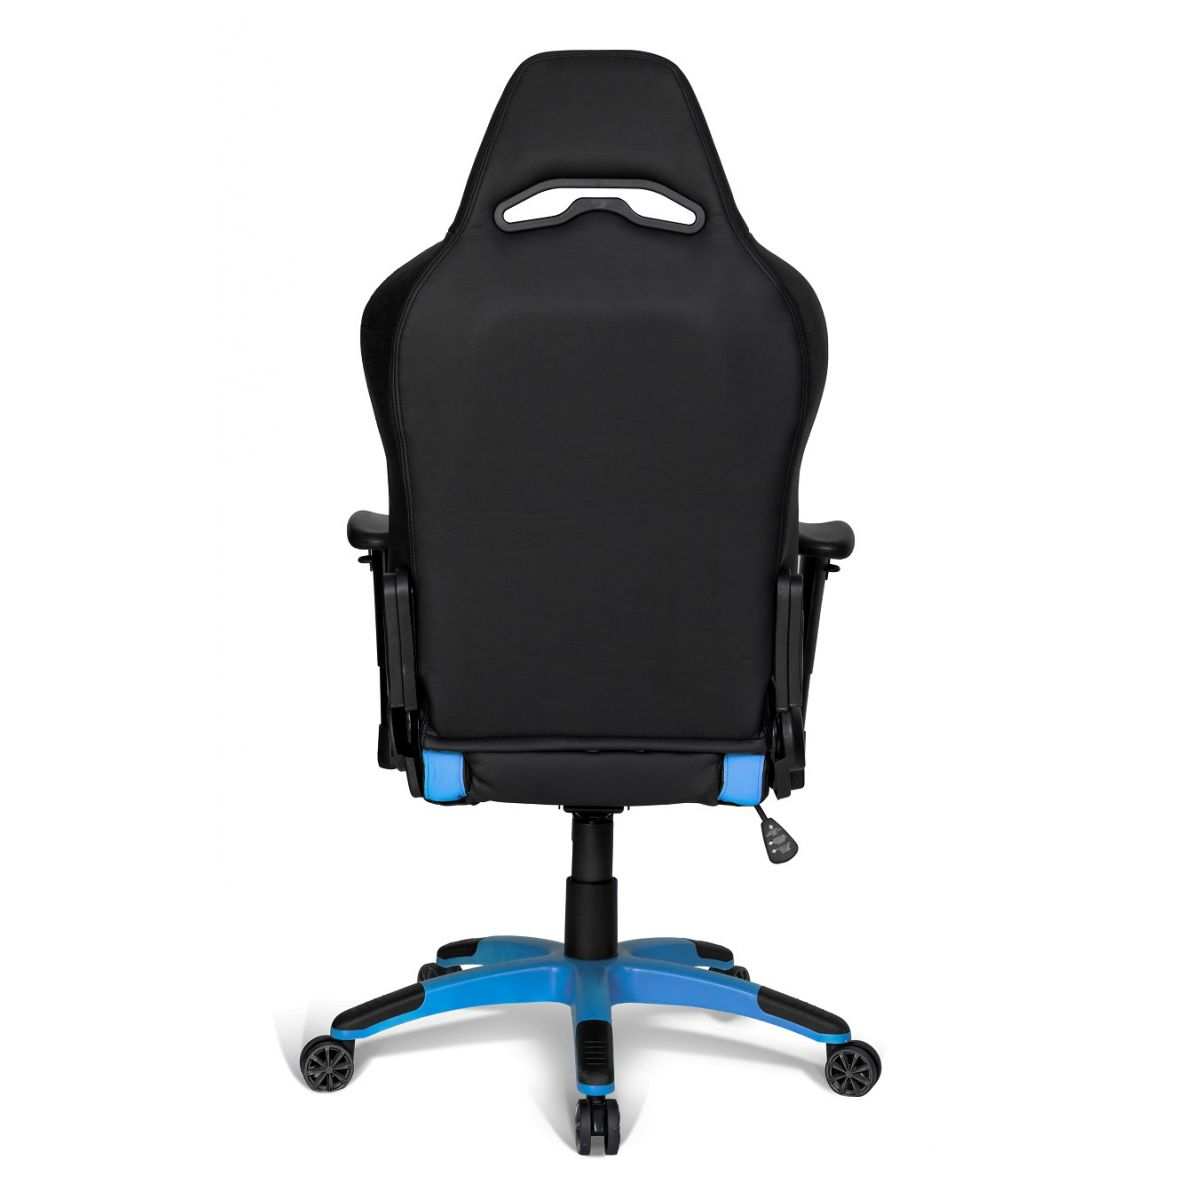 Cadeira AKRacing Premium V2 Black Blue 10216-0 - AKRacing